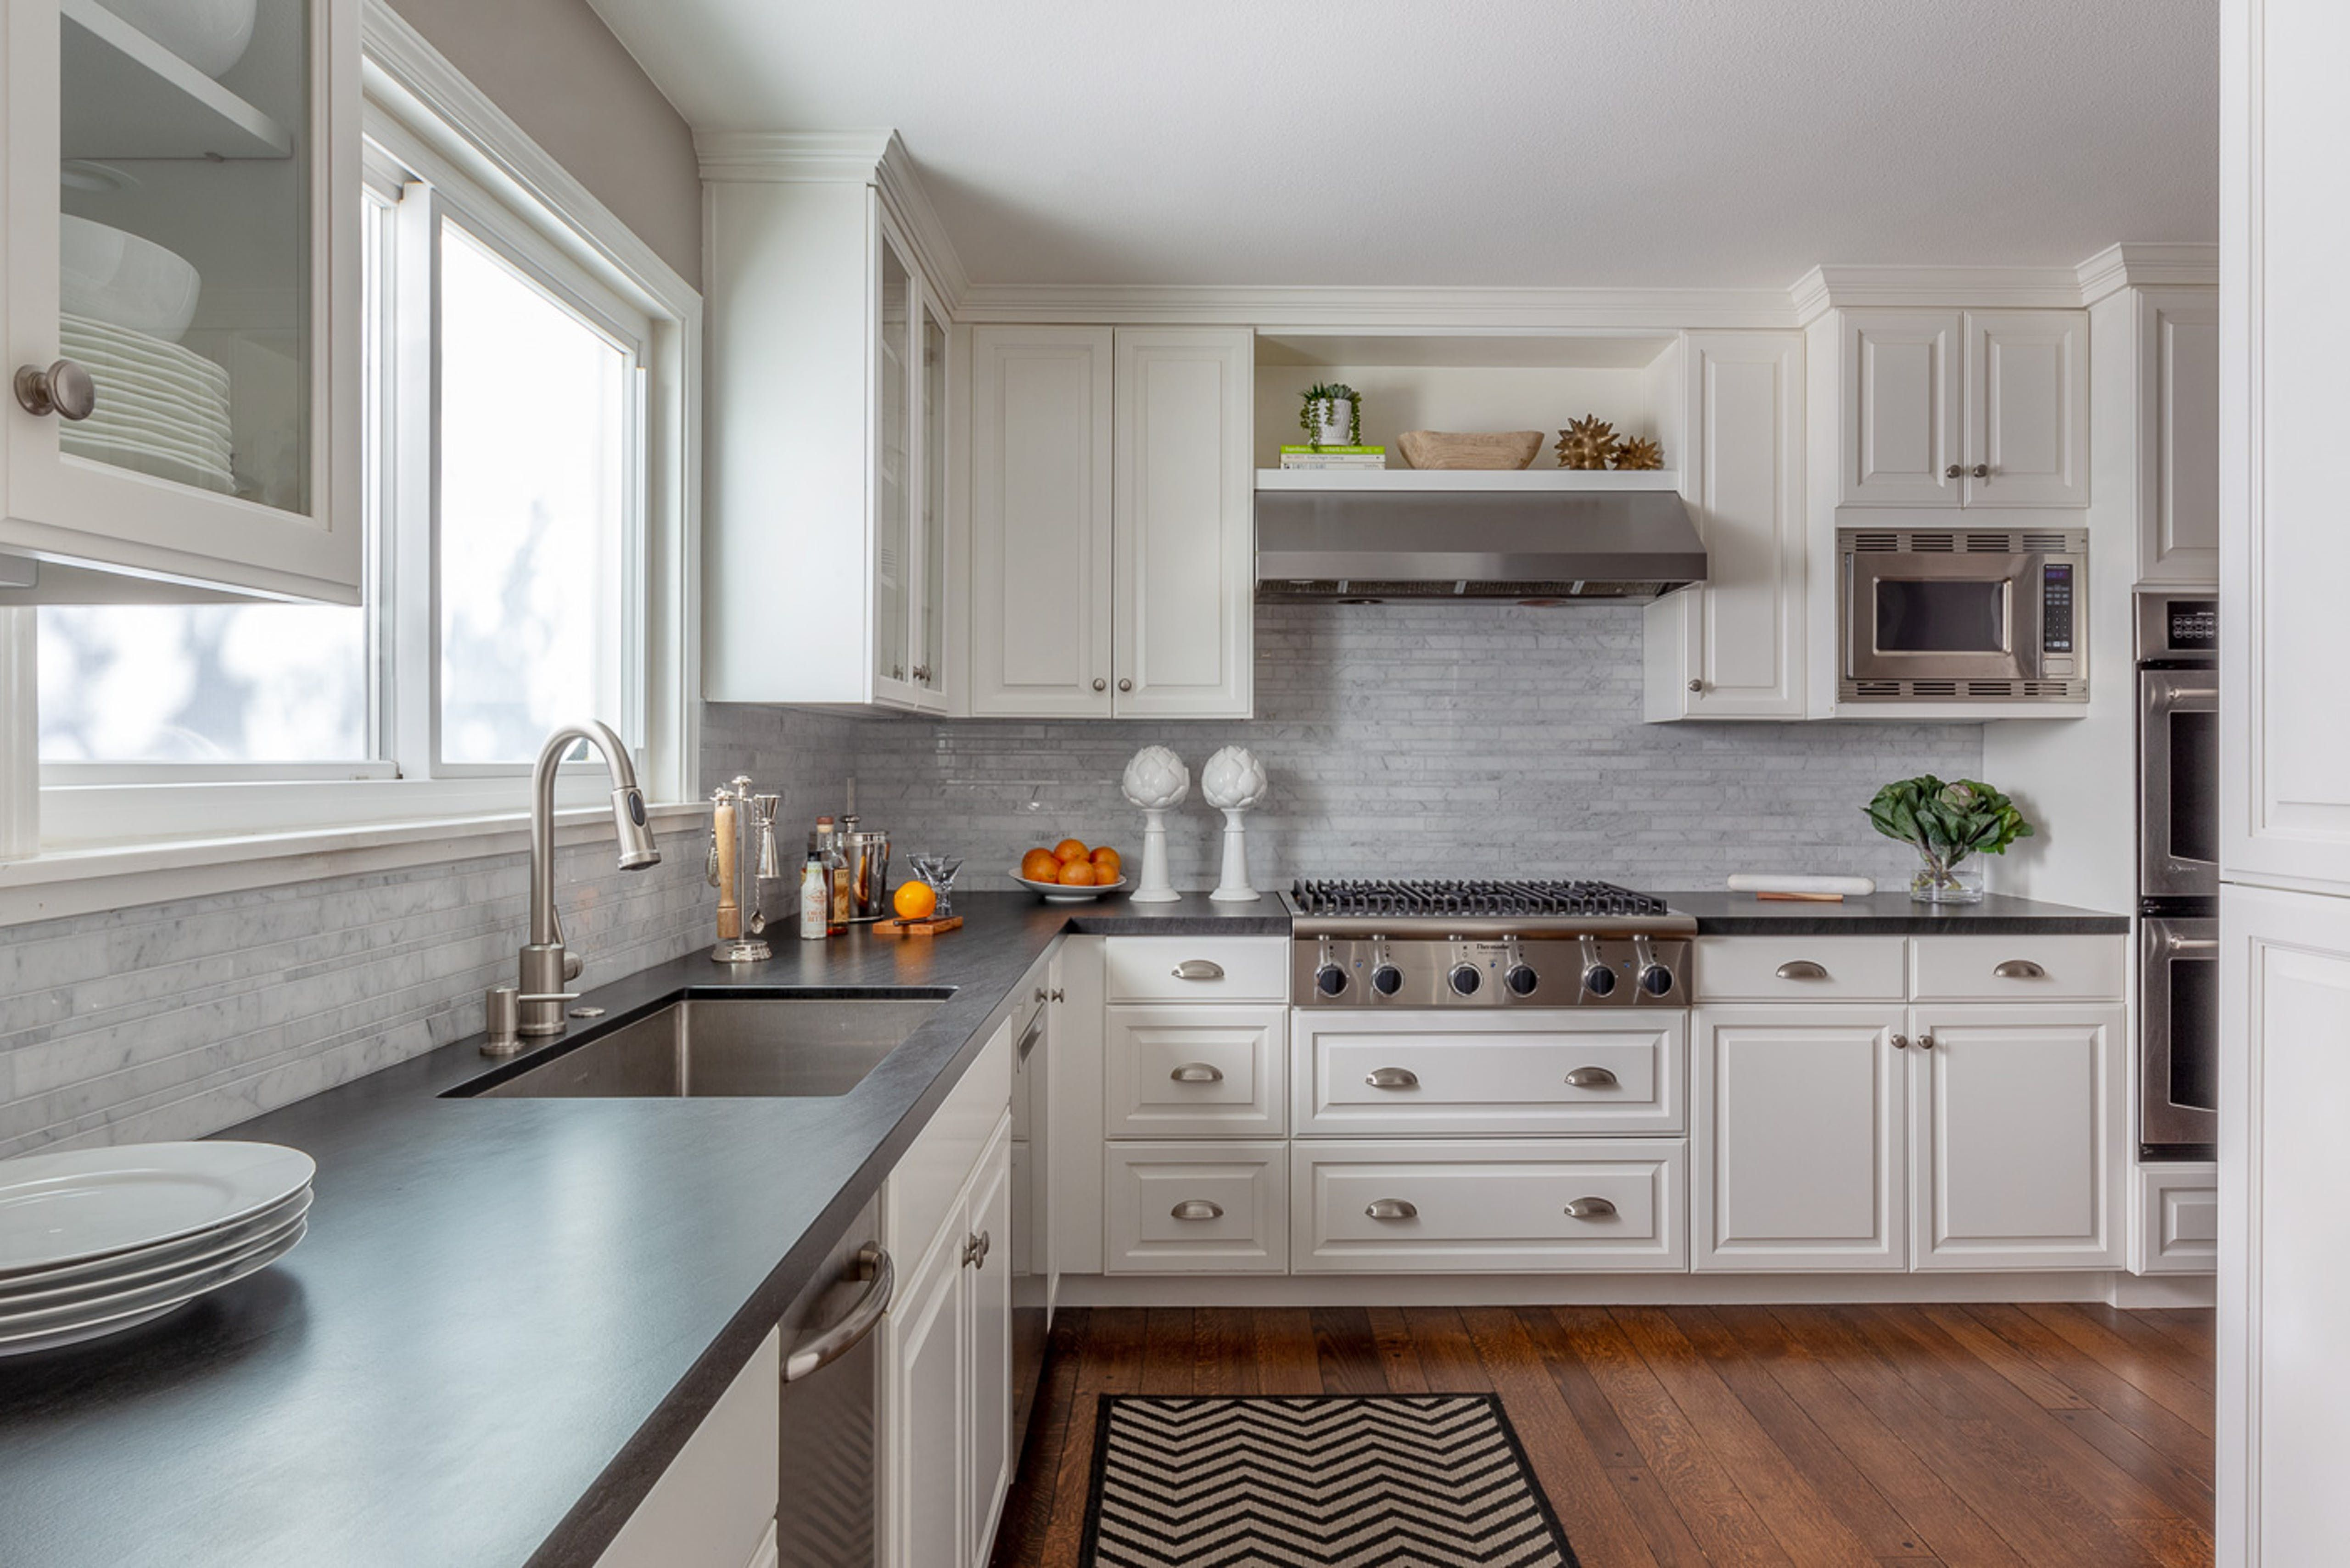 Wood Floors Are A Classic Element In Traditional Country Kitchens